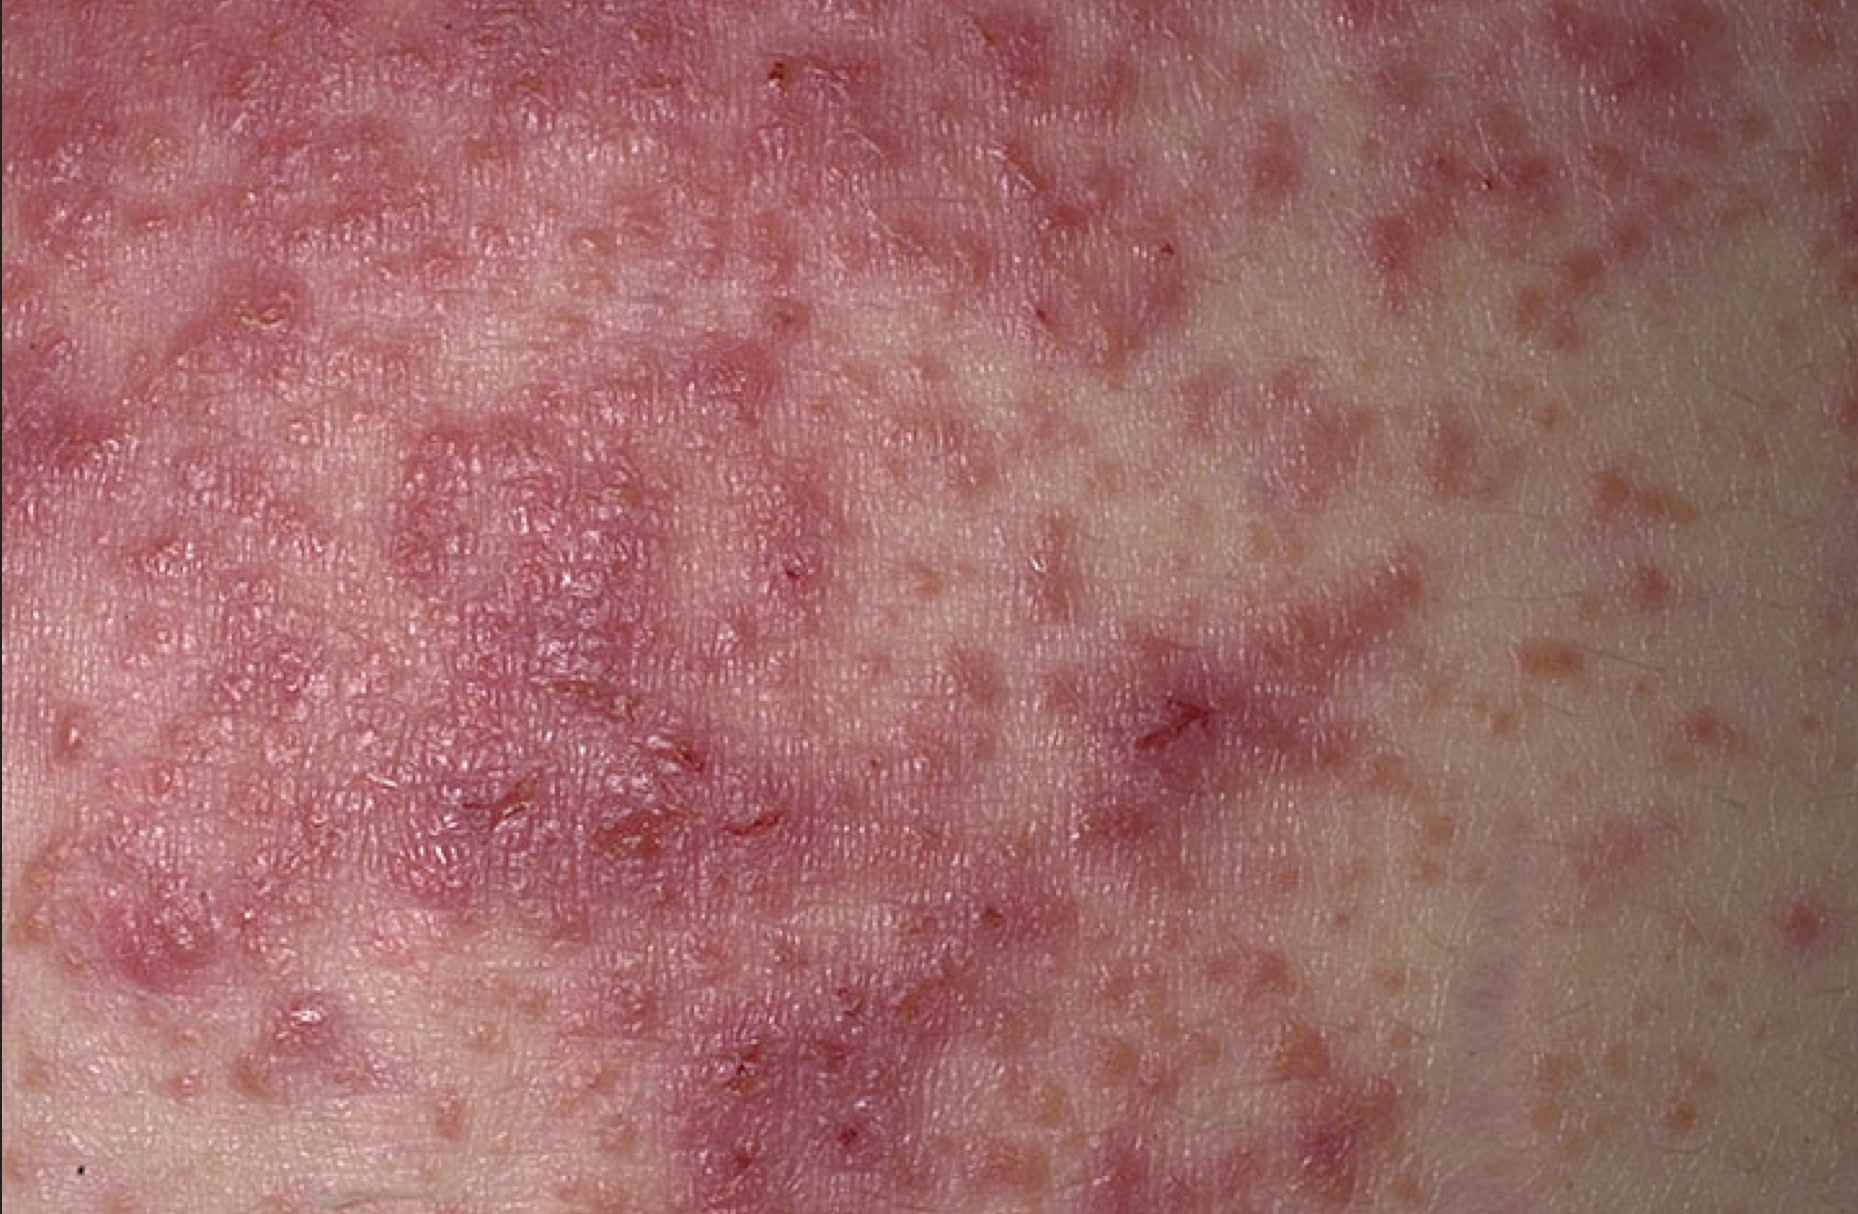 Dermatitis Herpetiformis Celiac Disease Rash Photos